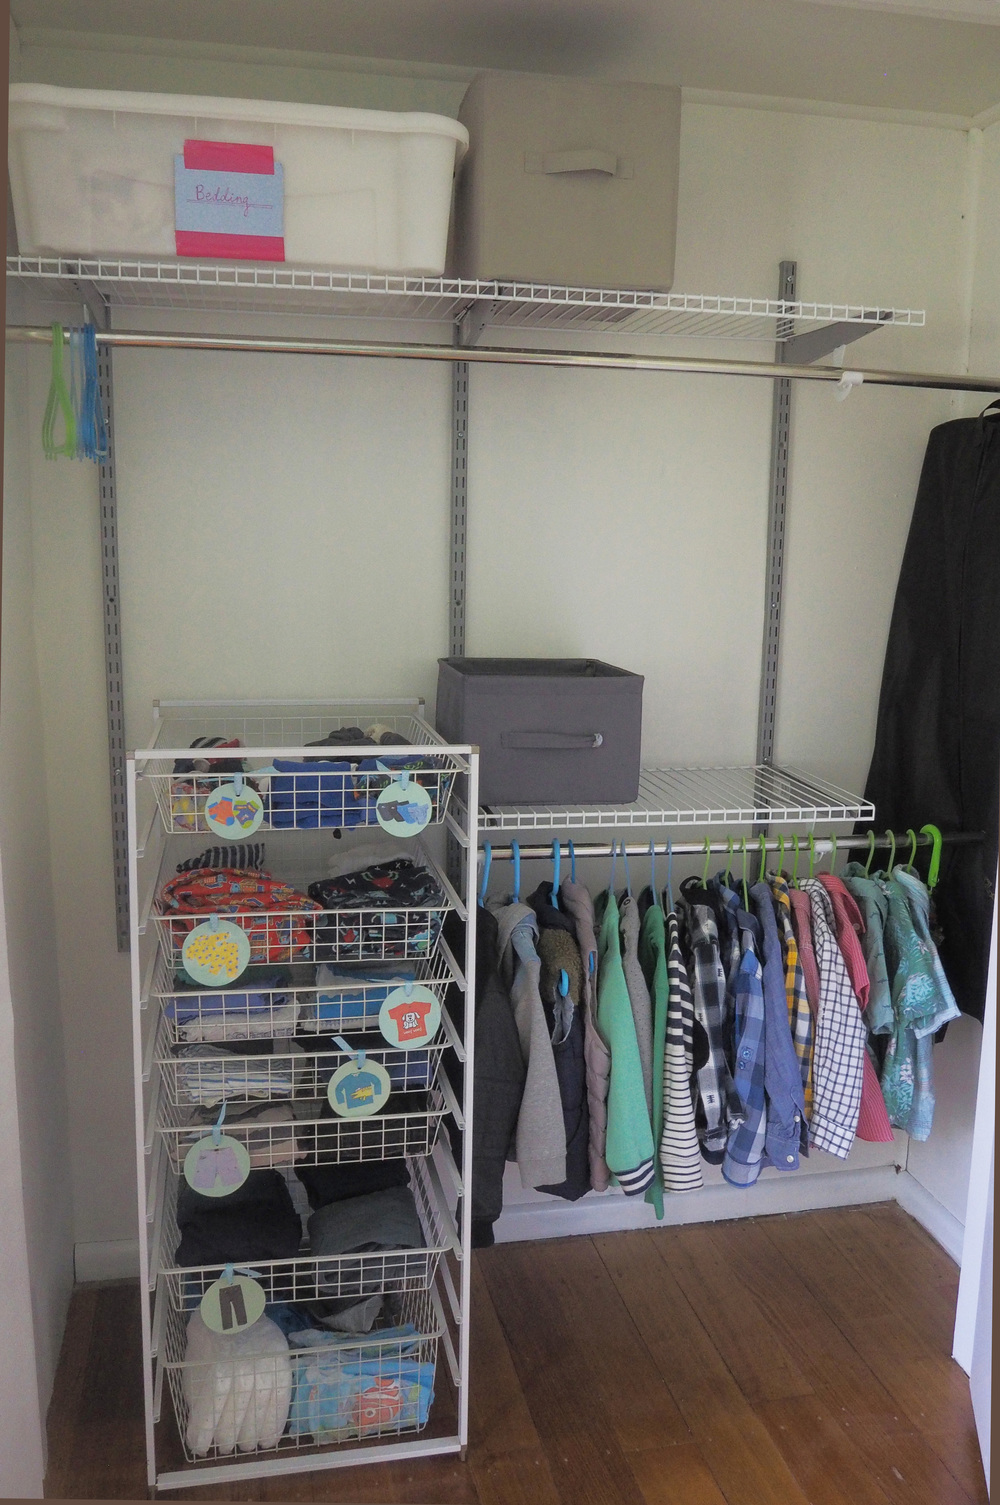 Organising clothes in a child's wardrobe - The Organised You